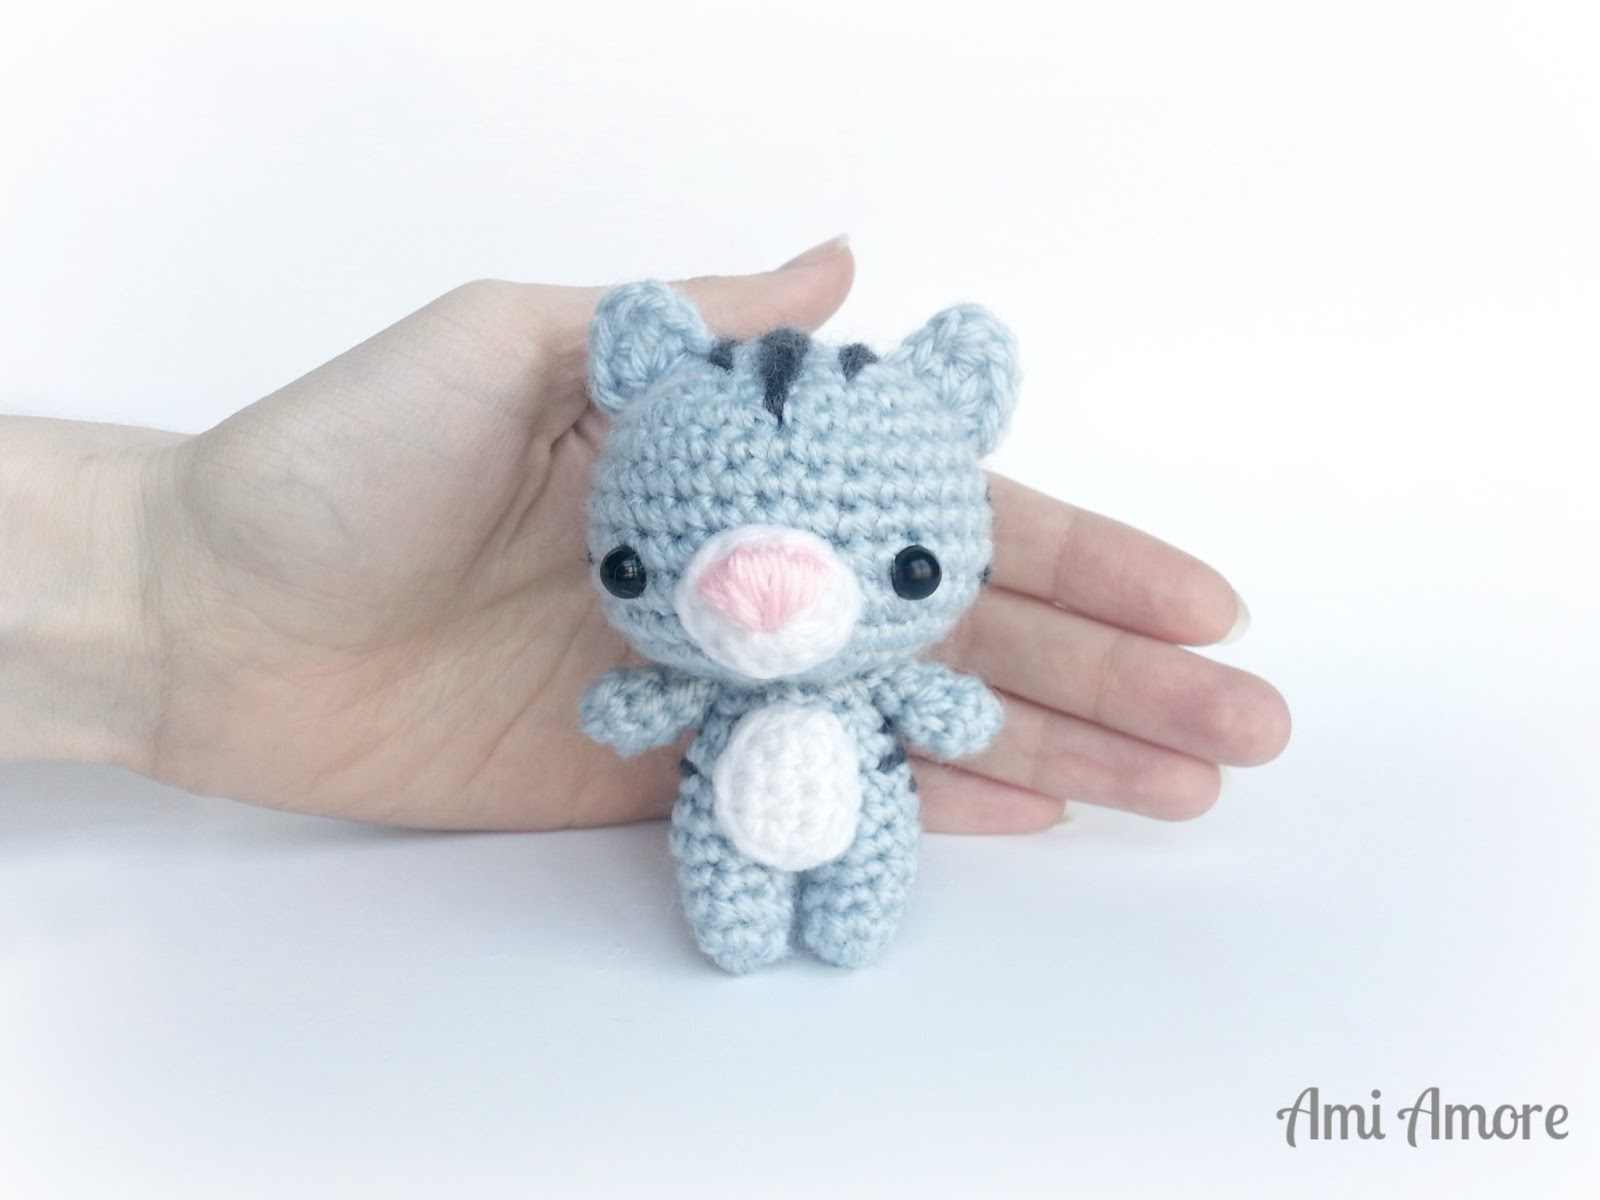 Amigurumi Joined Rounds : Ami Amore: Cutie Kitty News and Amigurumi Joined Rounds!